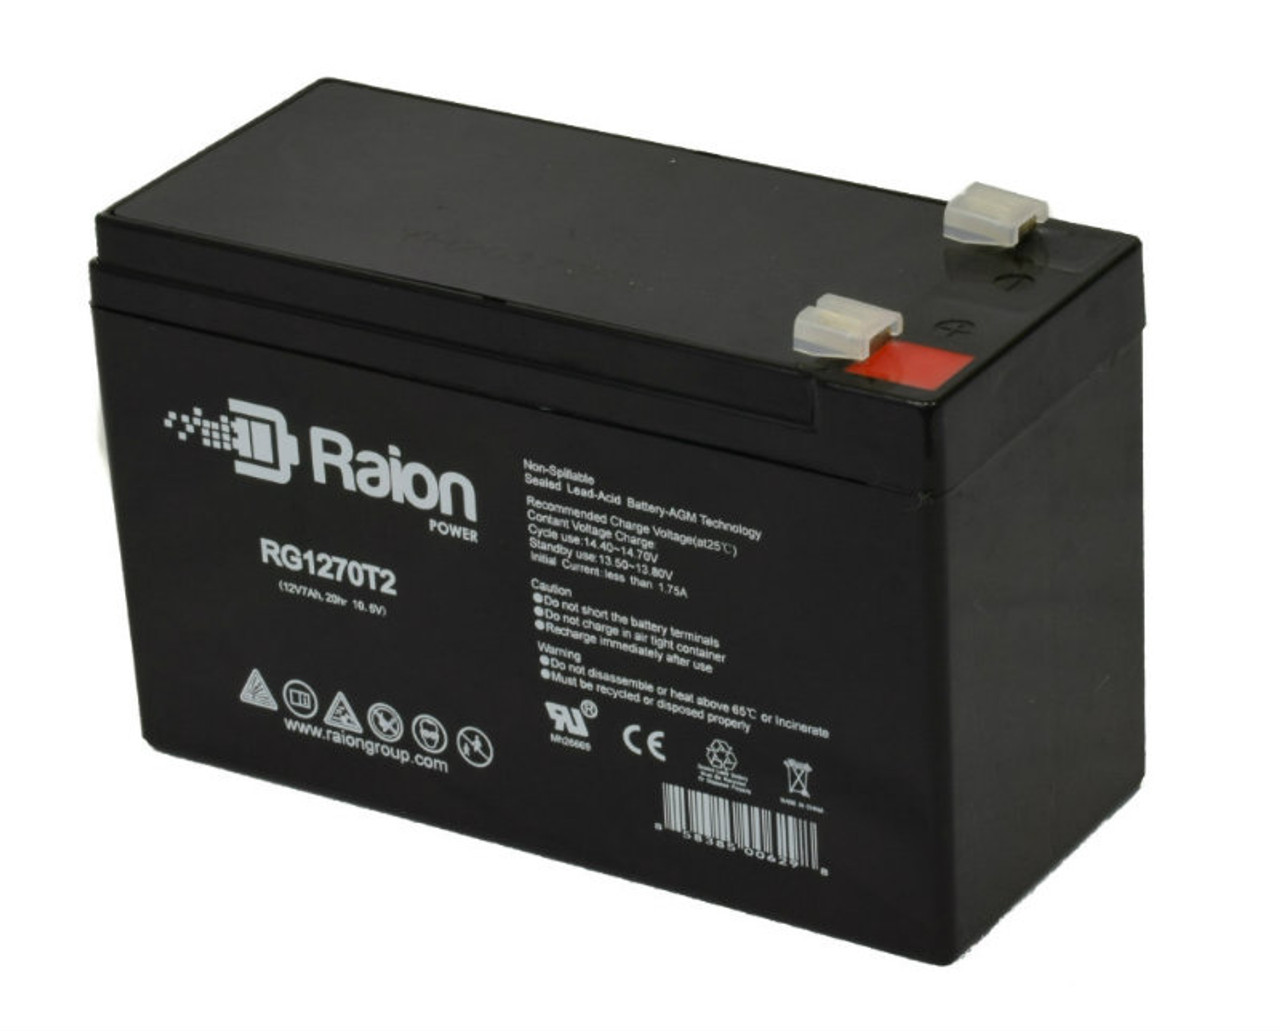 Raion Power RG1270T1 Replacement Battery for MK Battery ES7-12